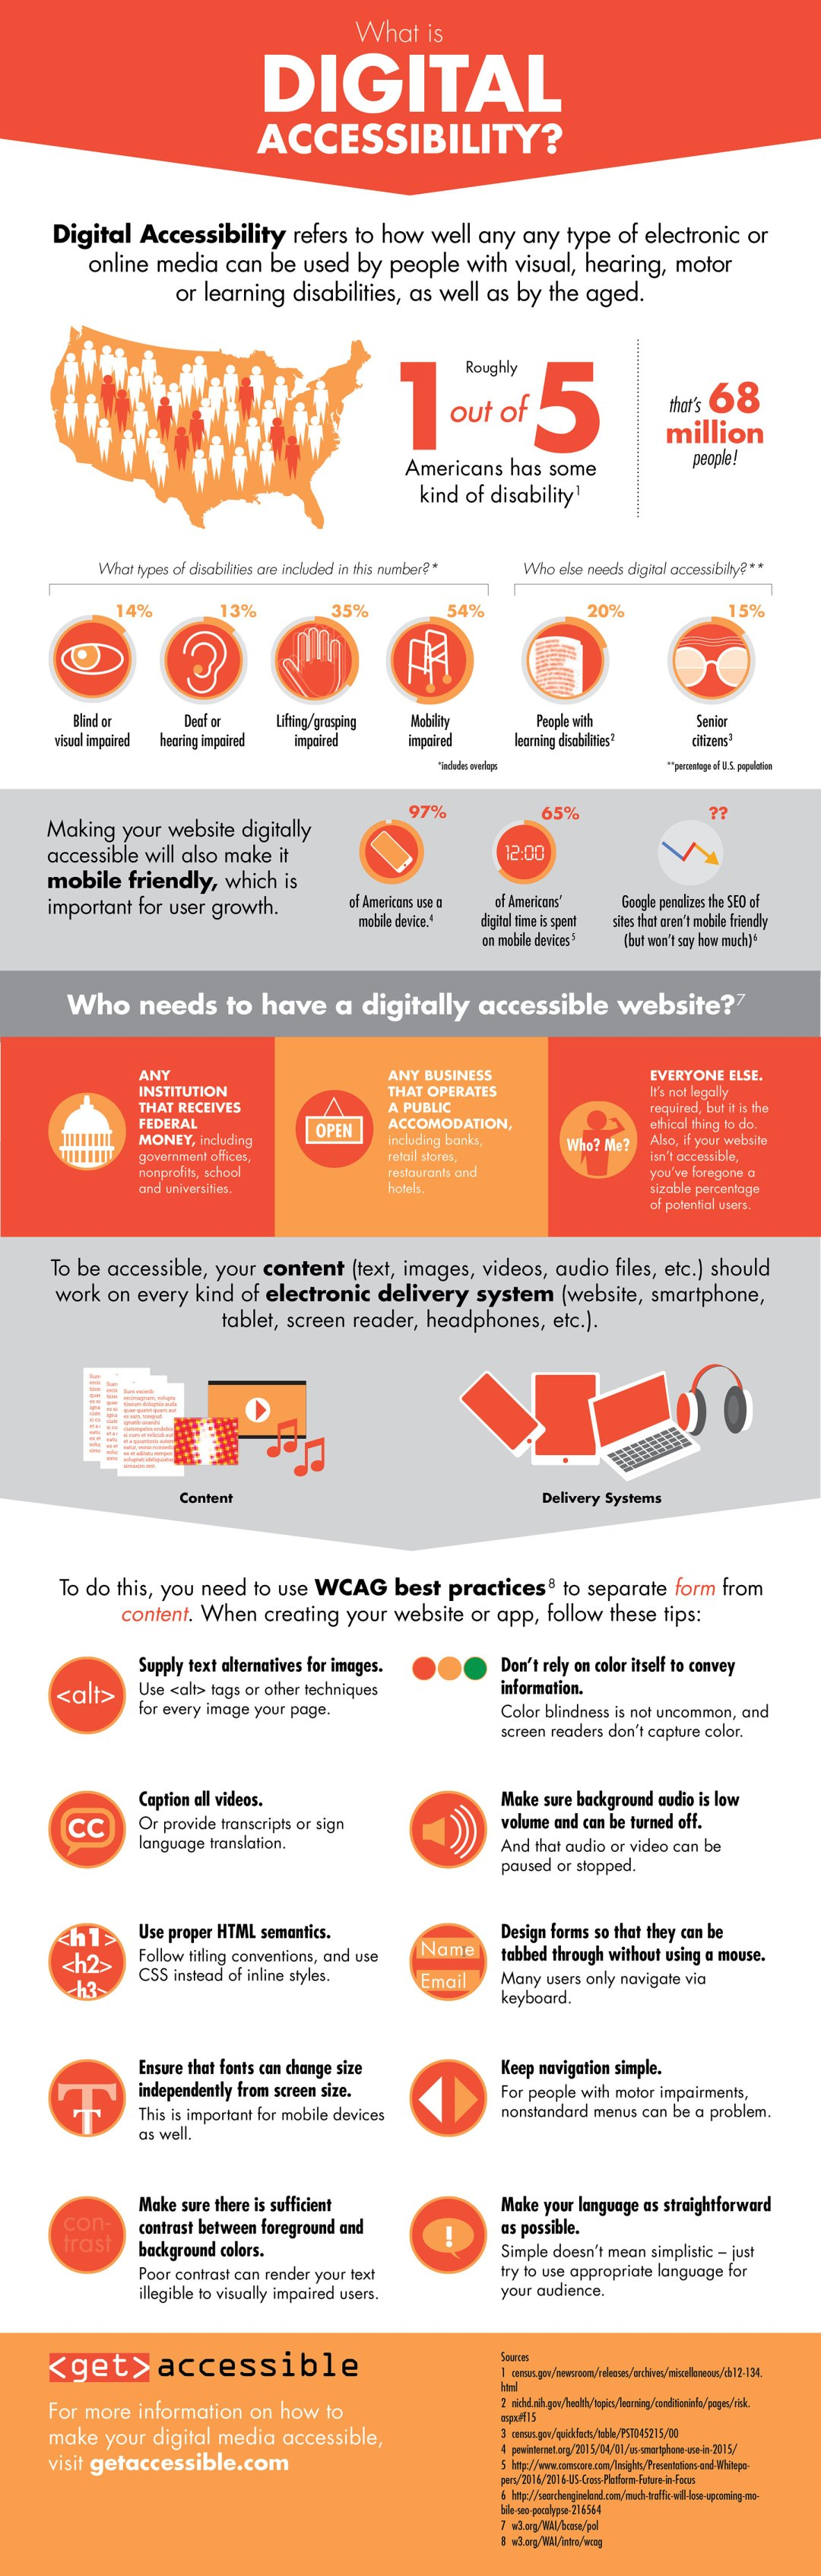 Get Accessible Infographic